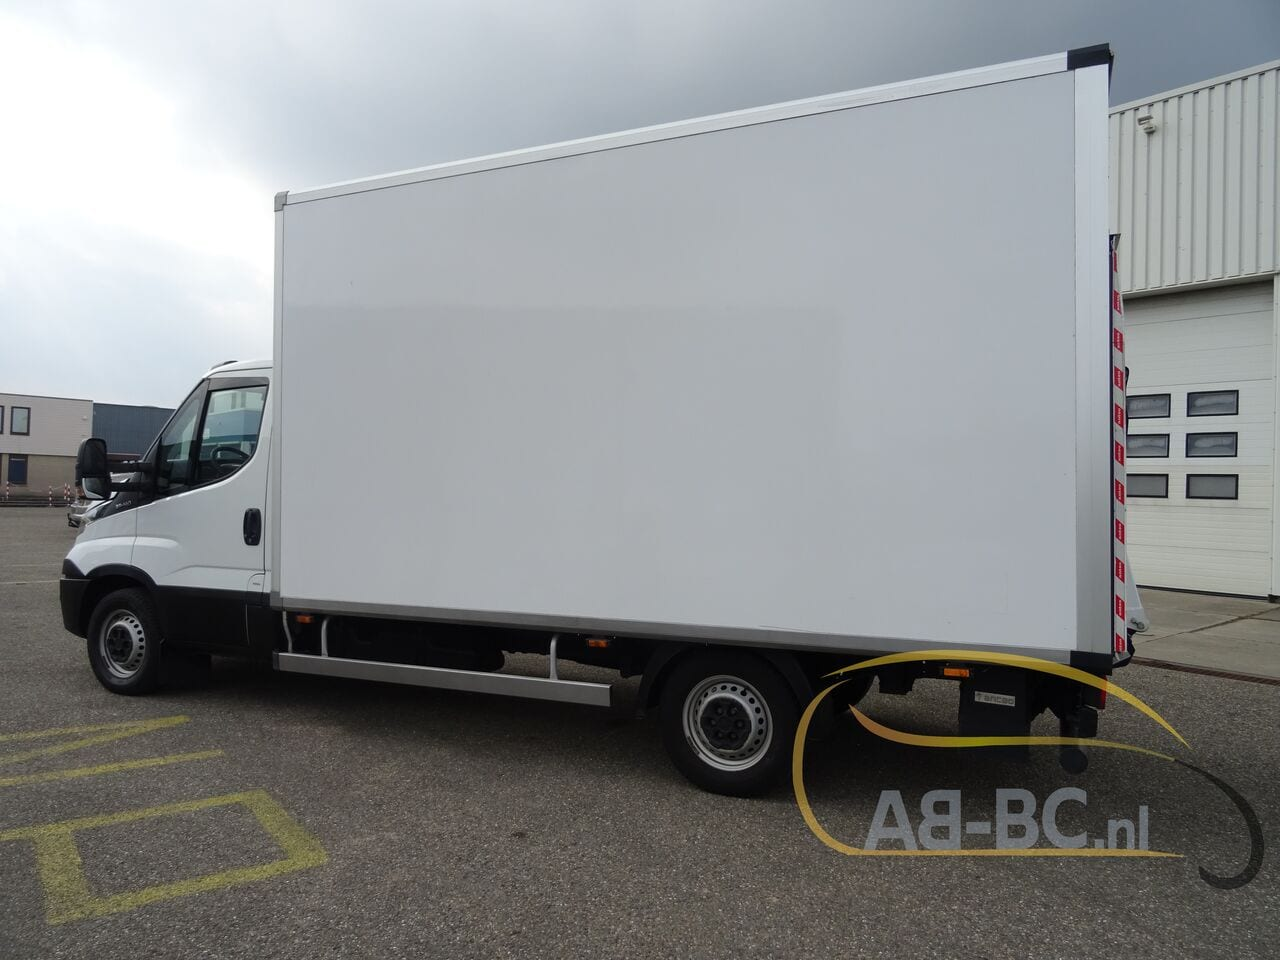 commercial-vehicle-box-truck-3-5tIVECO-Daily-35S14-EURO-6---1618842035644829714_big_45c34c432cdcb01870d1413c38a6fc10--20081111411660340700